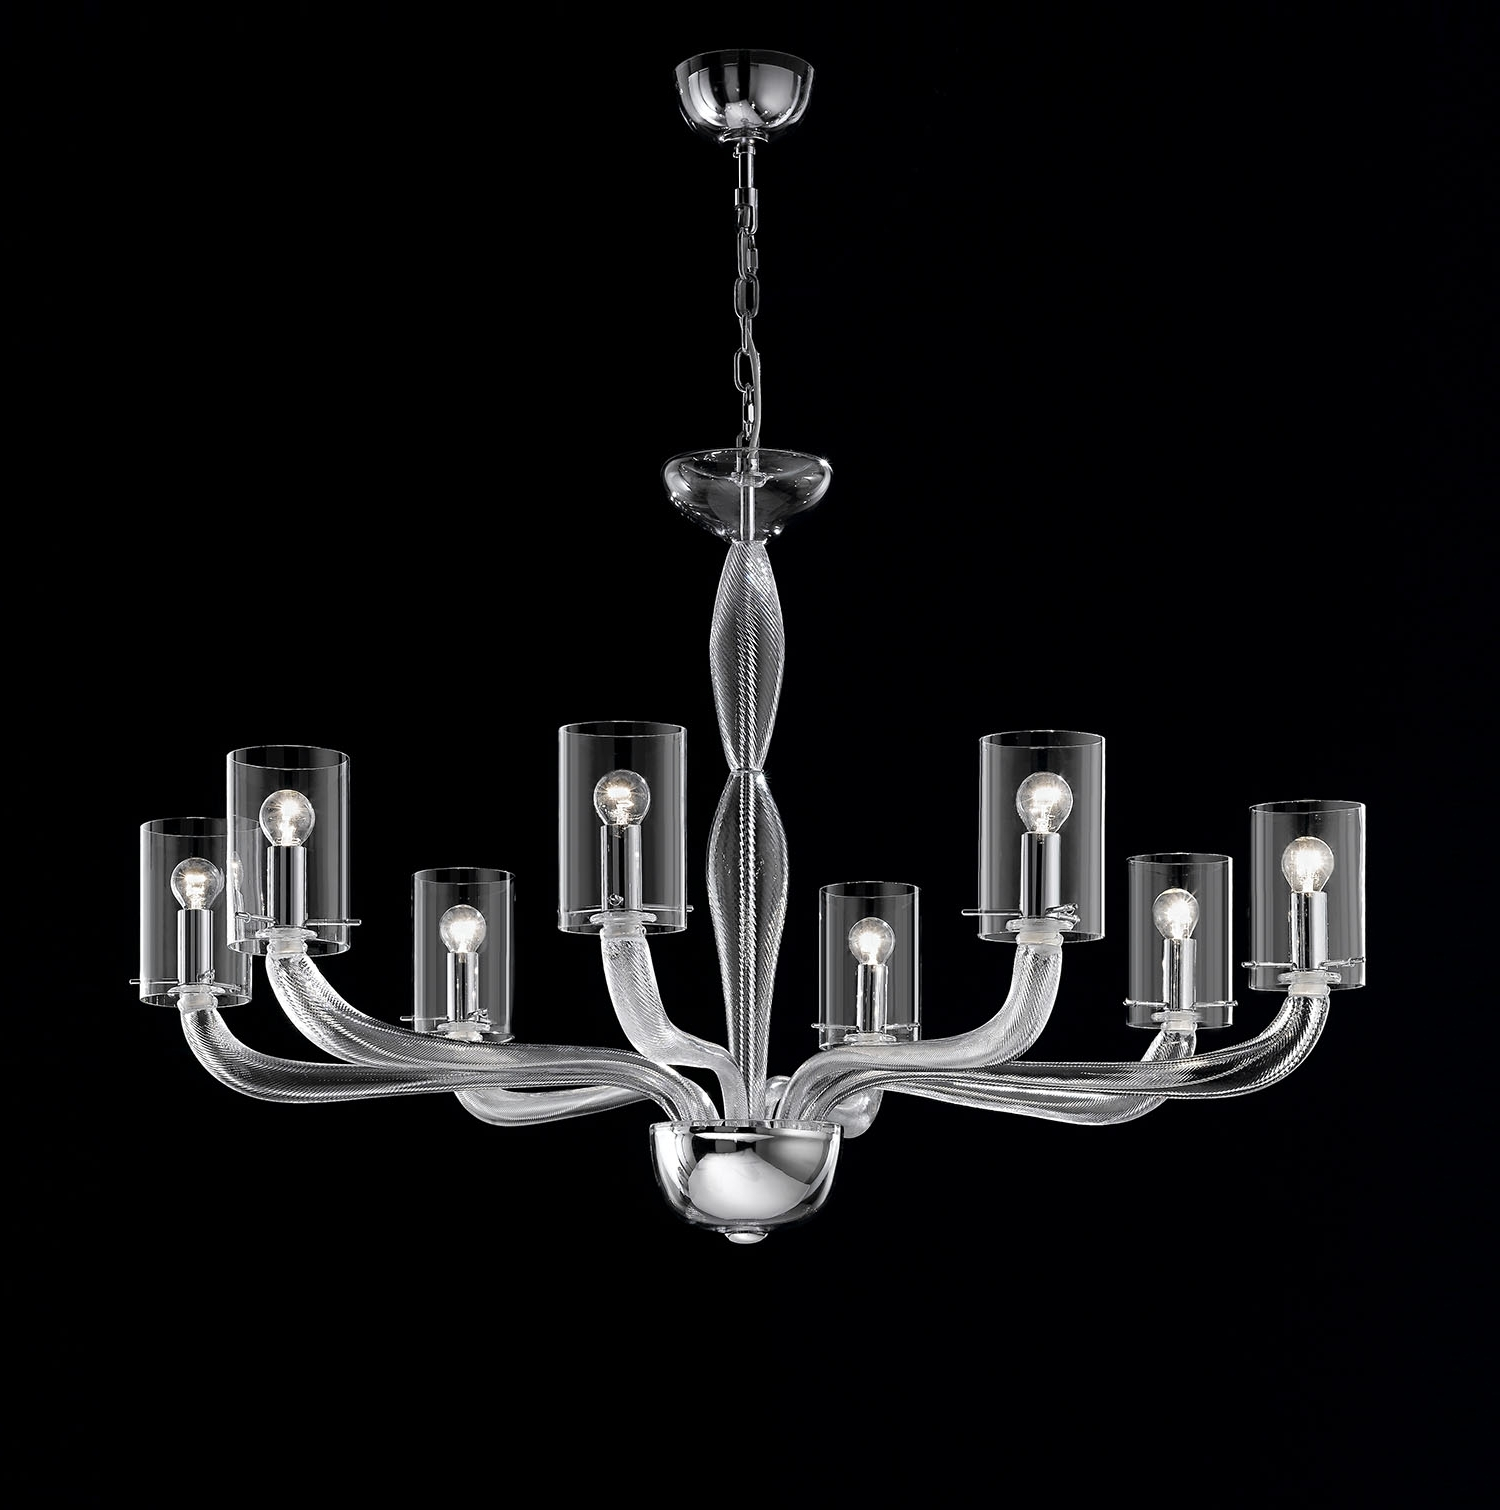 Newest Light : Modern Glass Chandelier Lighting Beautiful Italian Inside Modern Glass Chandeliers (View 3 of 20)